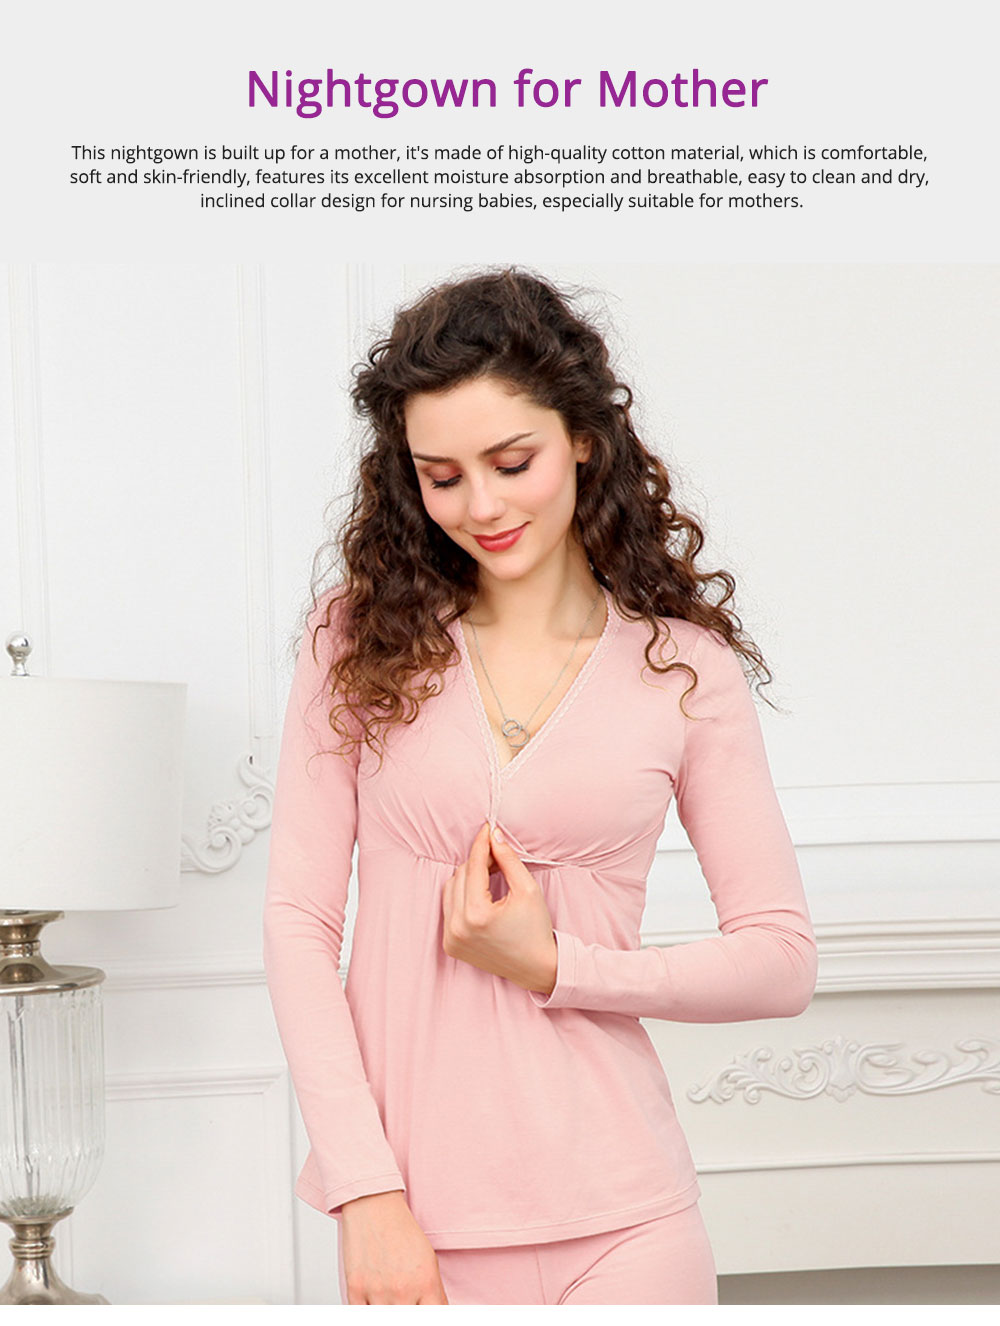 Women Nightgown, Cotton Material Breathable Inclined Collar Design Safe Confinement Suit Soft   Maternity Pajamas 0